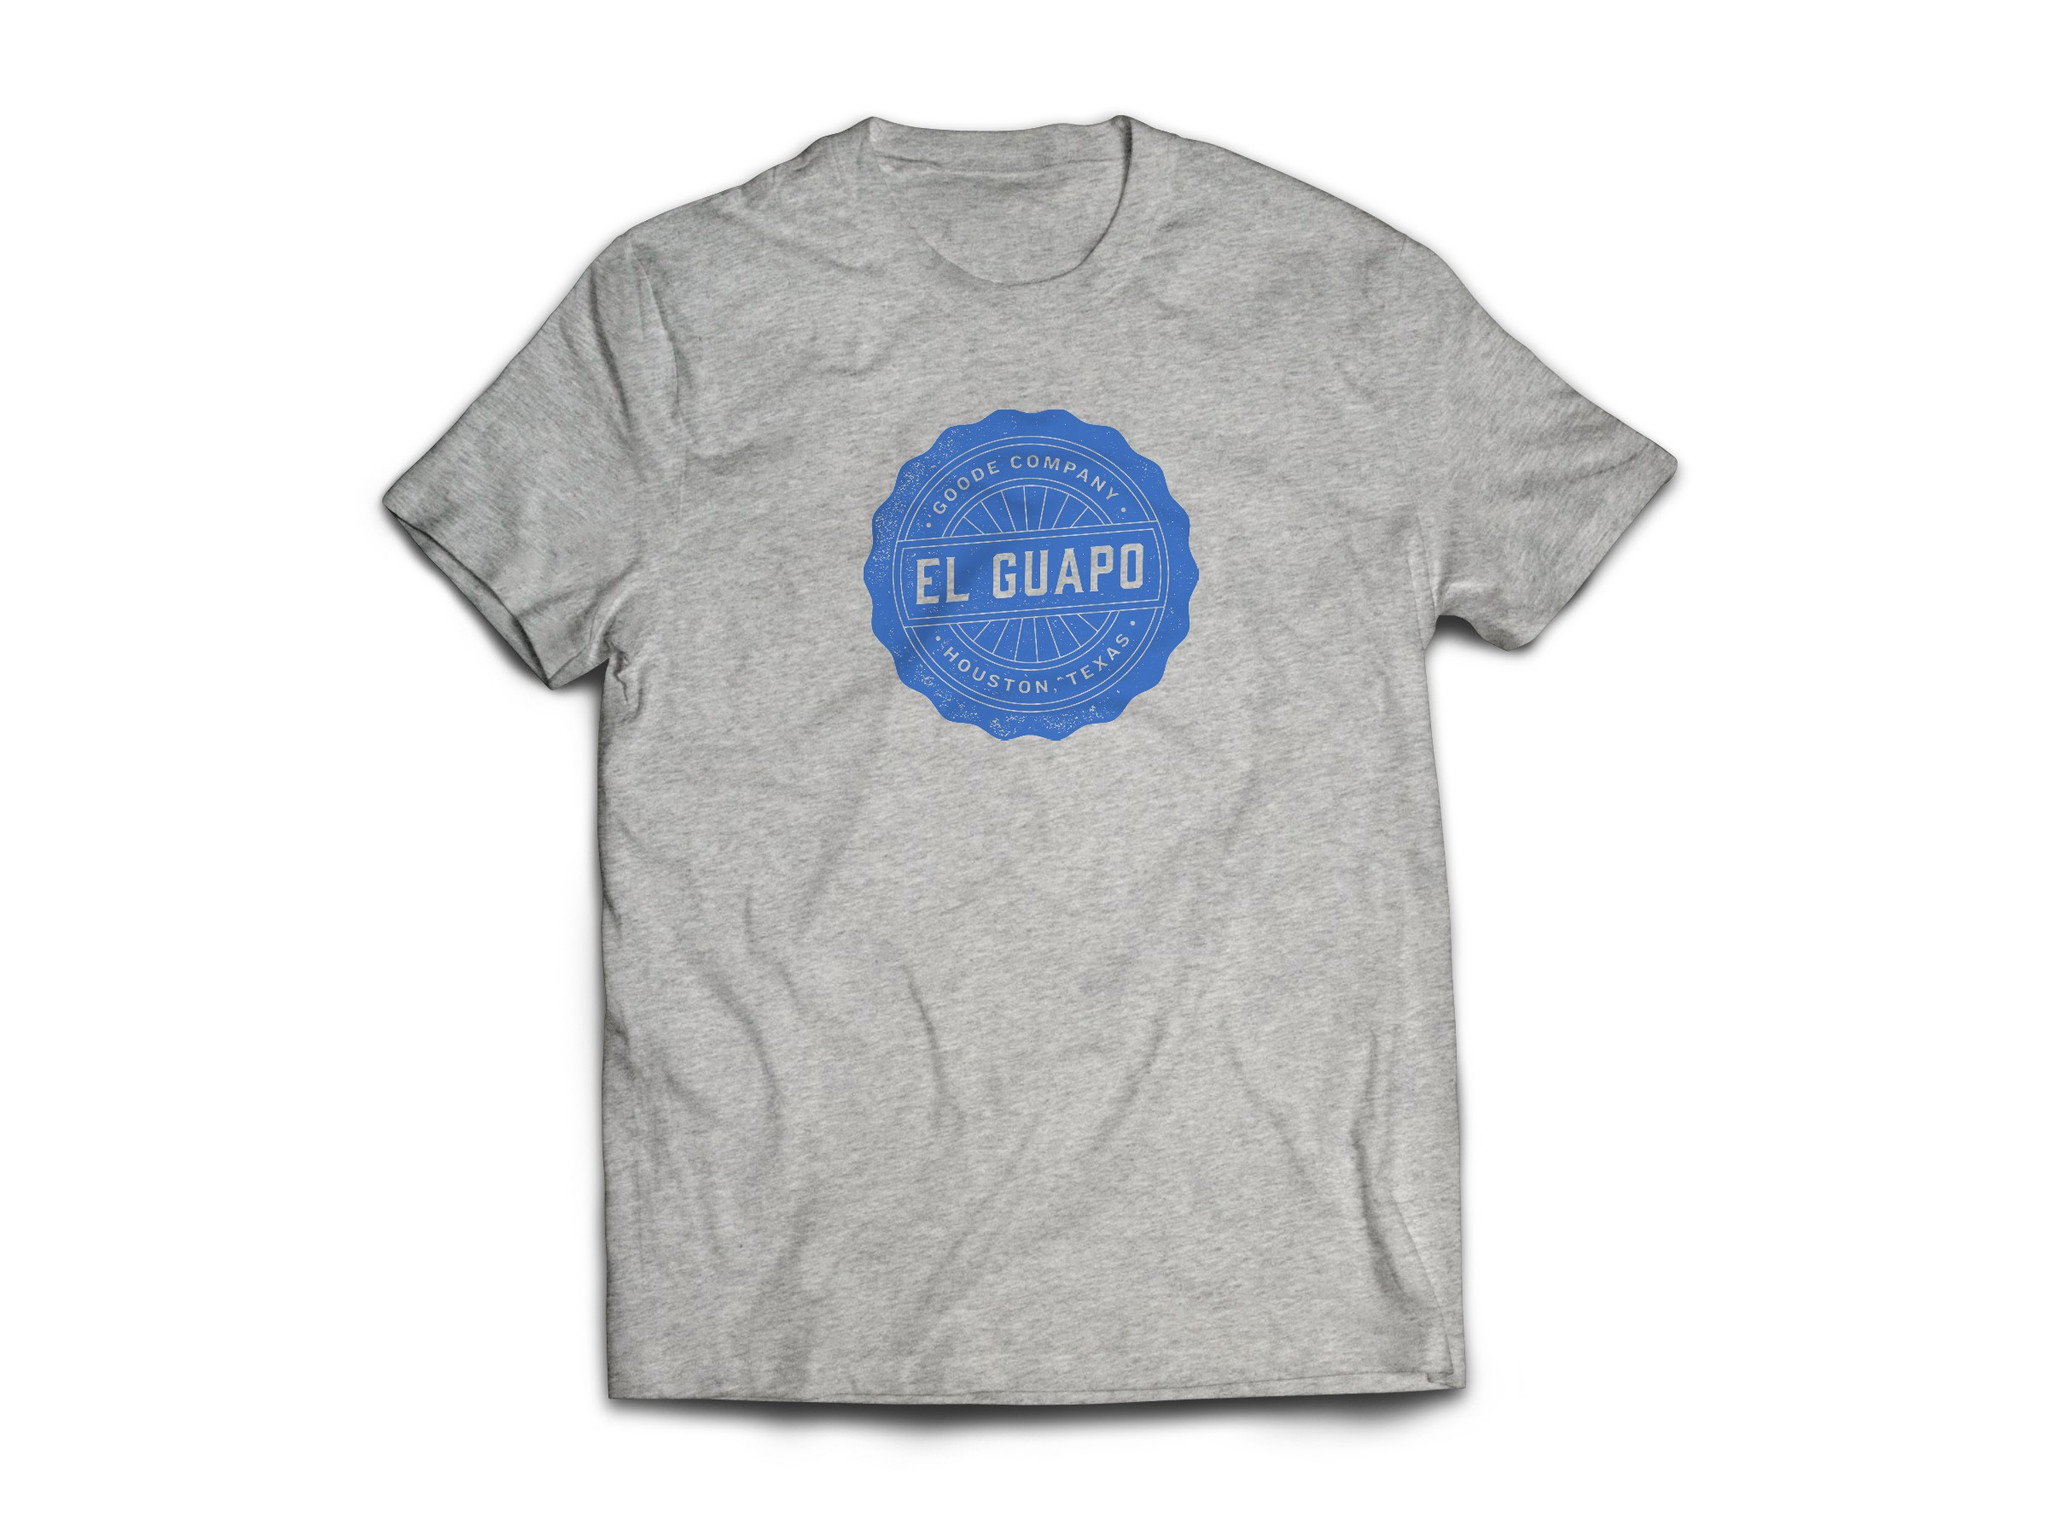 """Proud Texan wearing Goode Co's grey cotton t-shirt that says """"El Guapo"""" in blue font."""